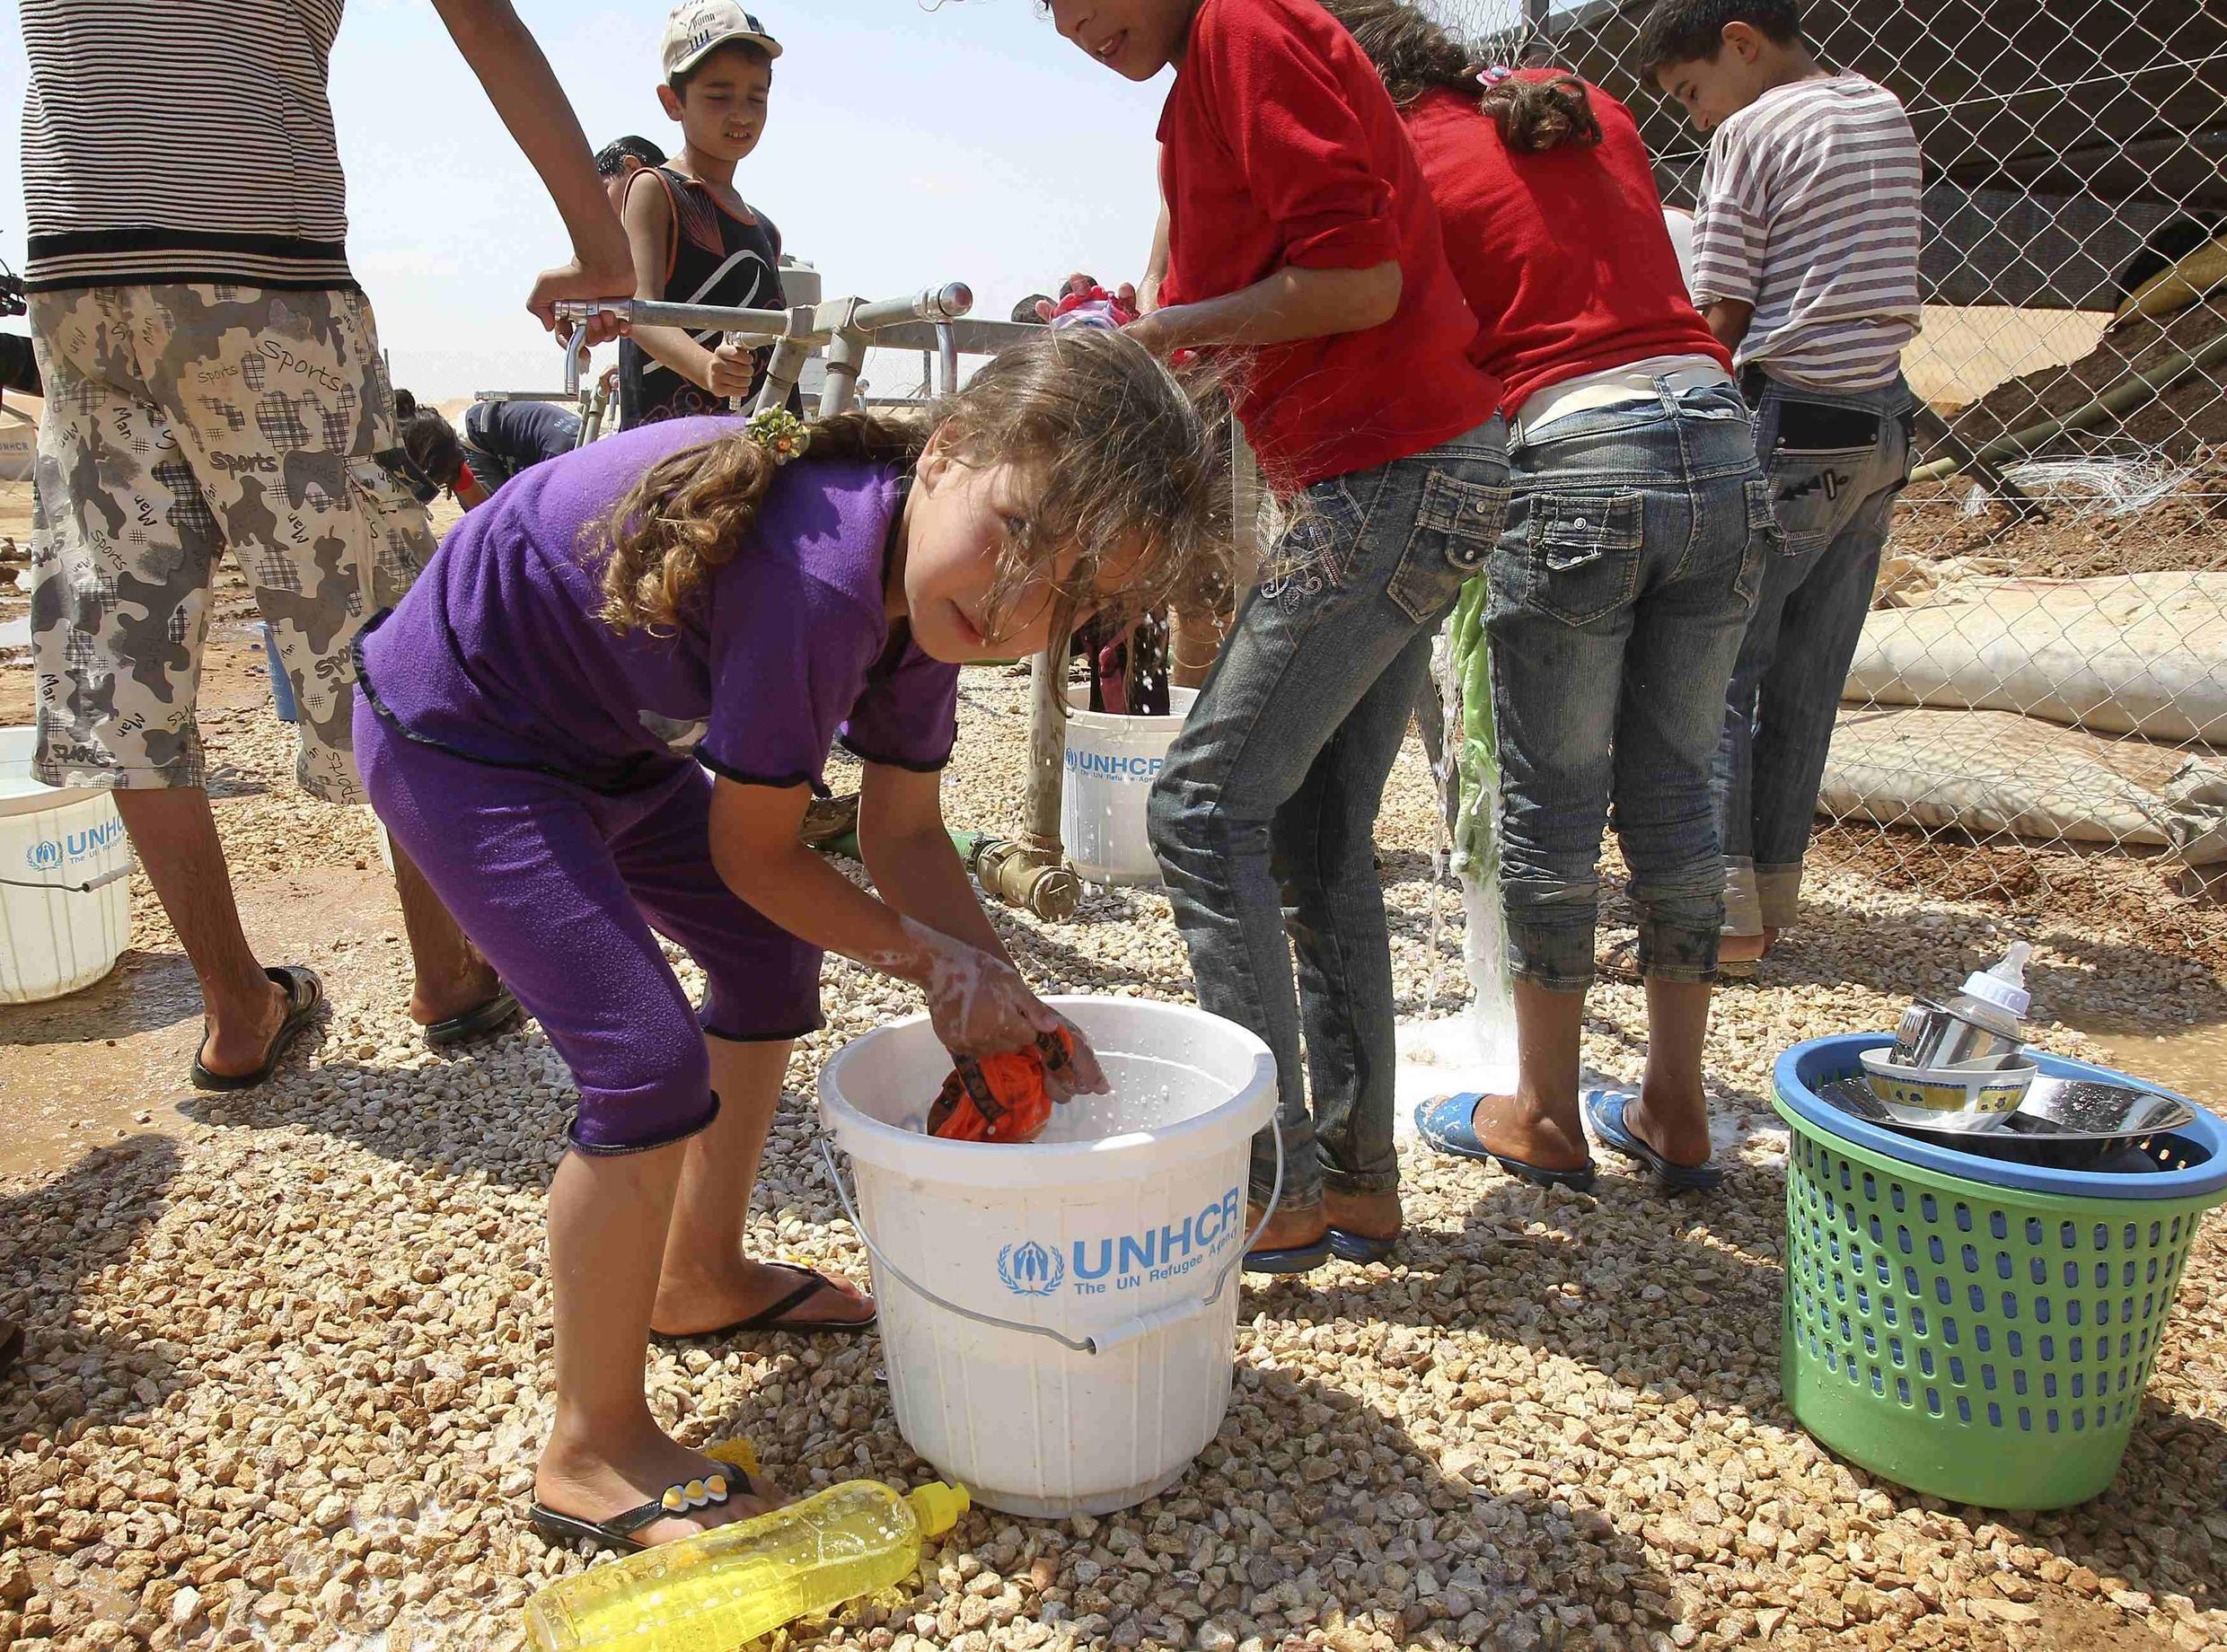 Syrian refugees at the Al Zaatri refugee camp in the Jordanian city of Mafraq, near the border with Syria, 5 August 2012.